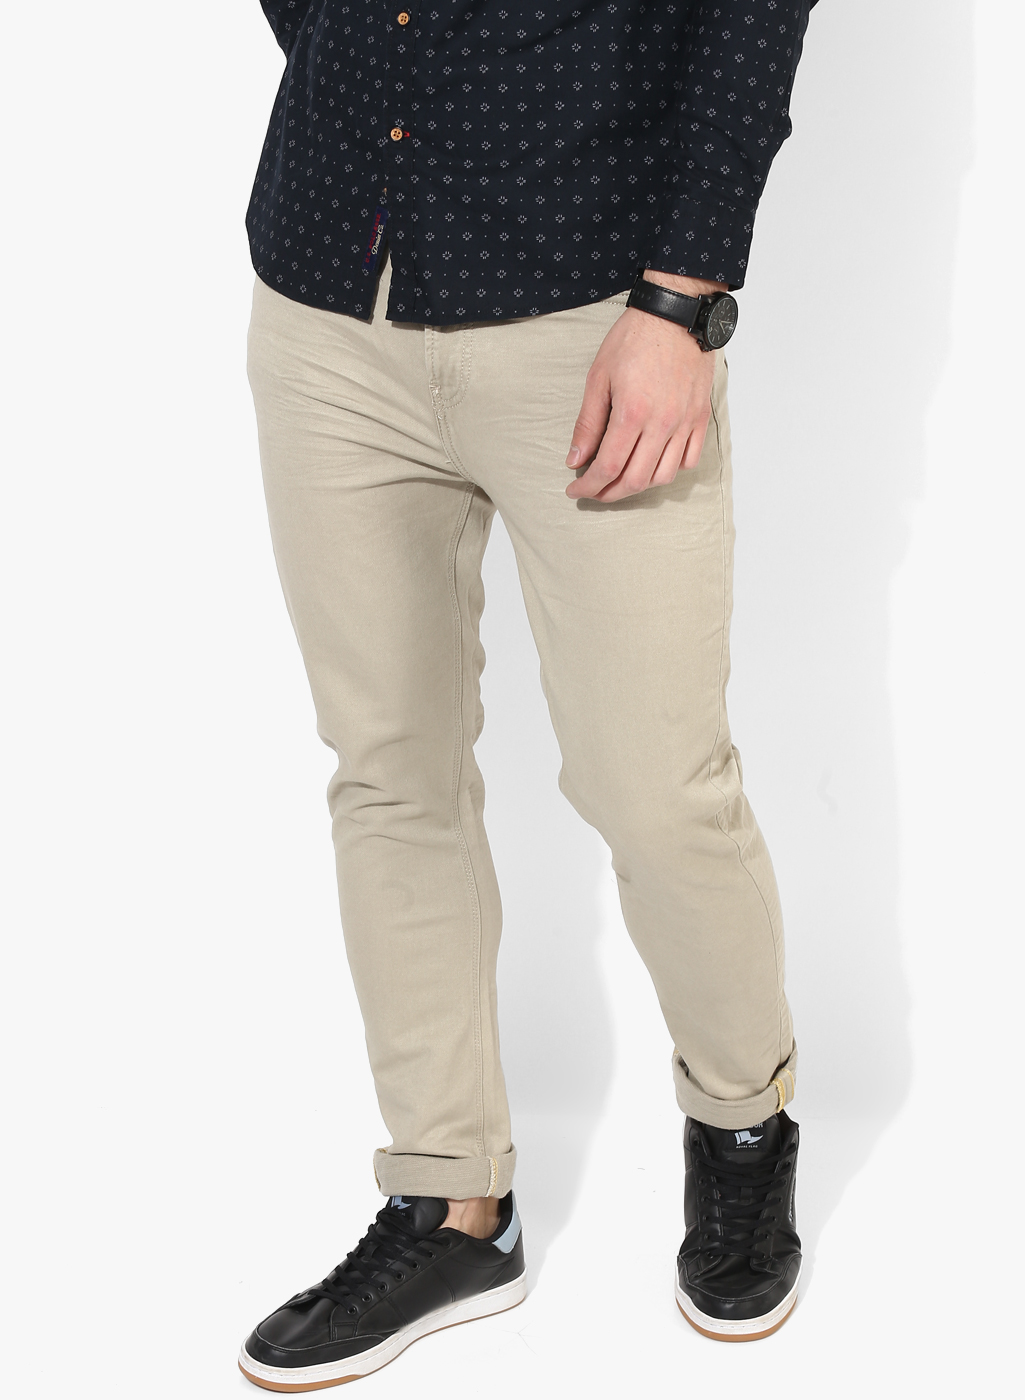 Beige Jeans buy united colors of benetton beige solid low rise slim fit jeans for men CBYIMRM